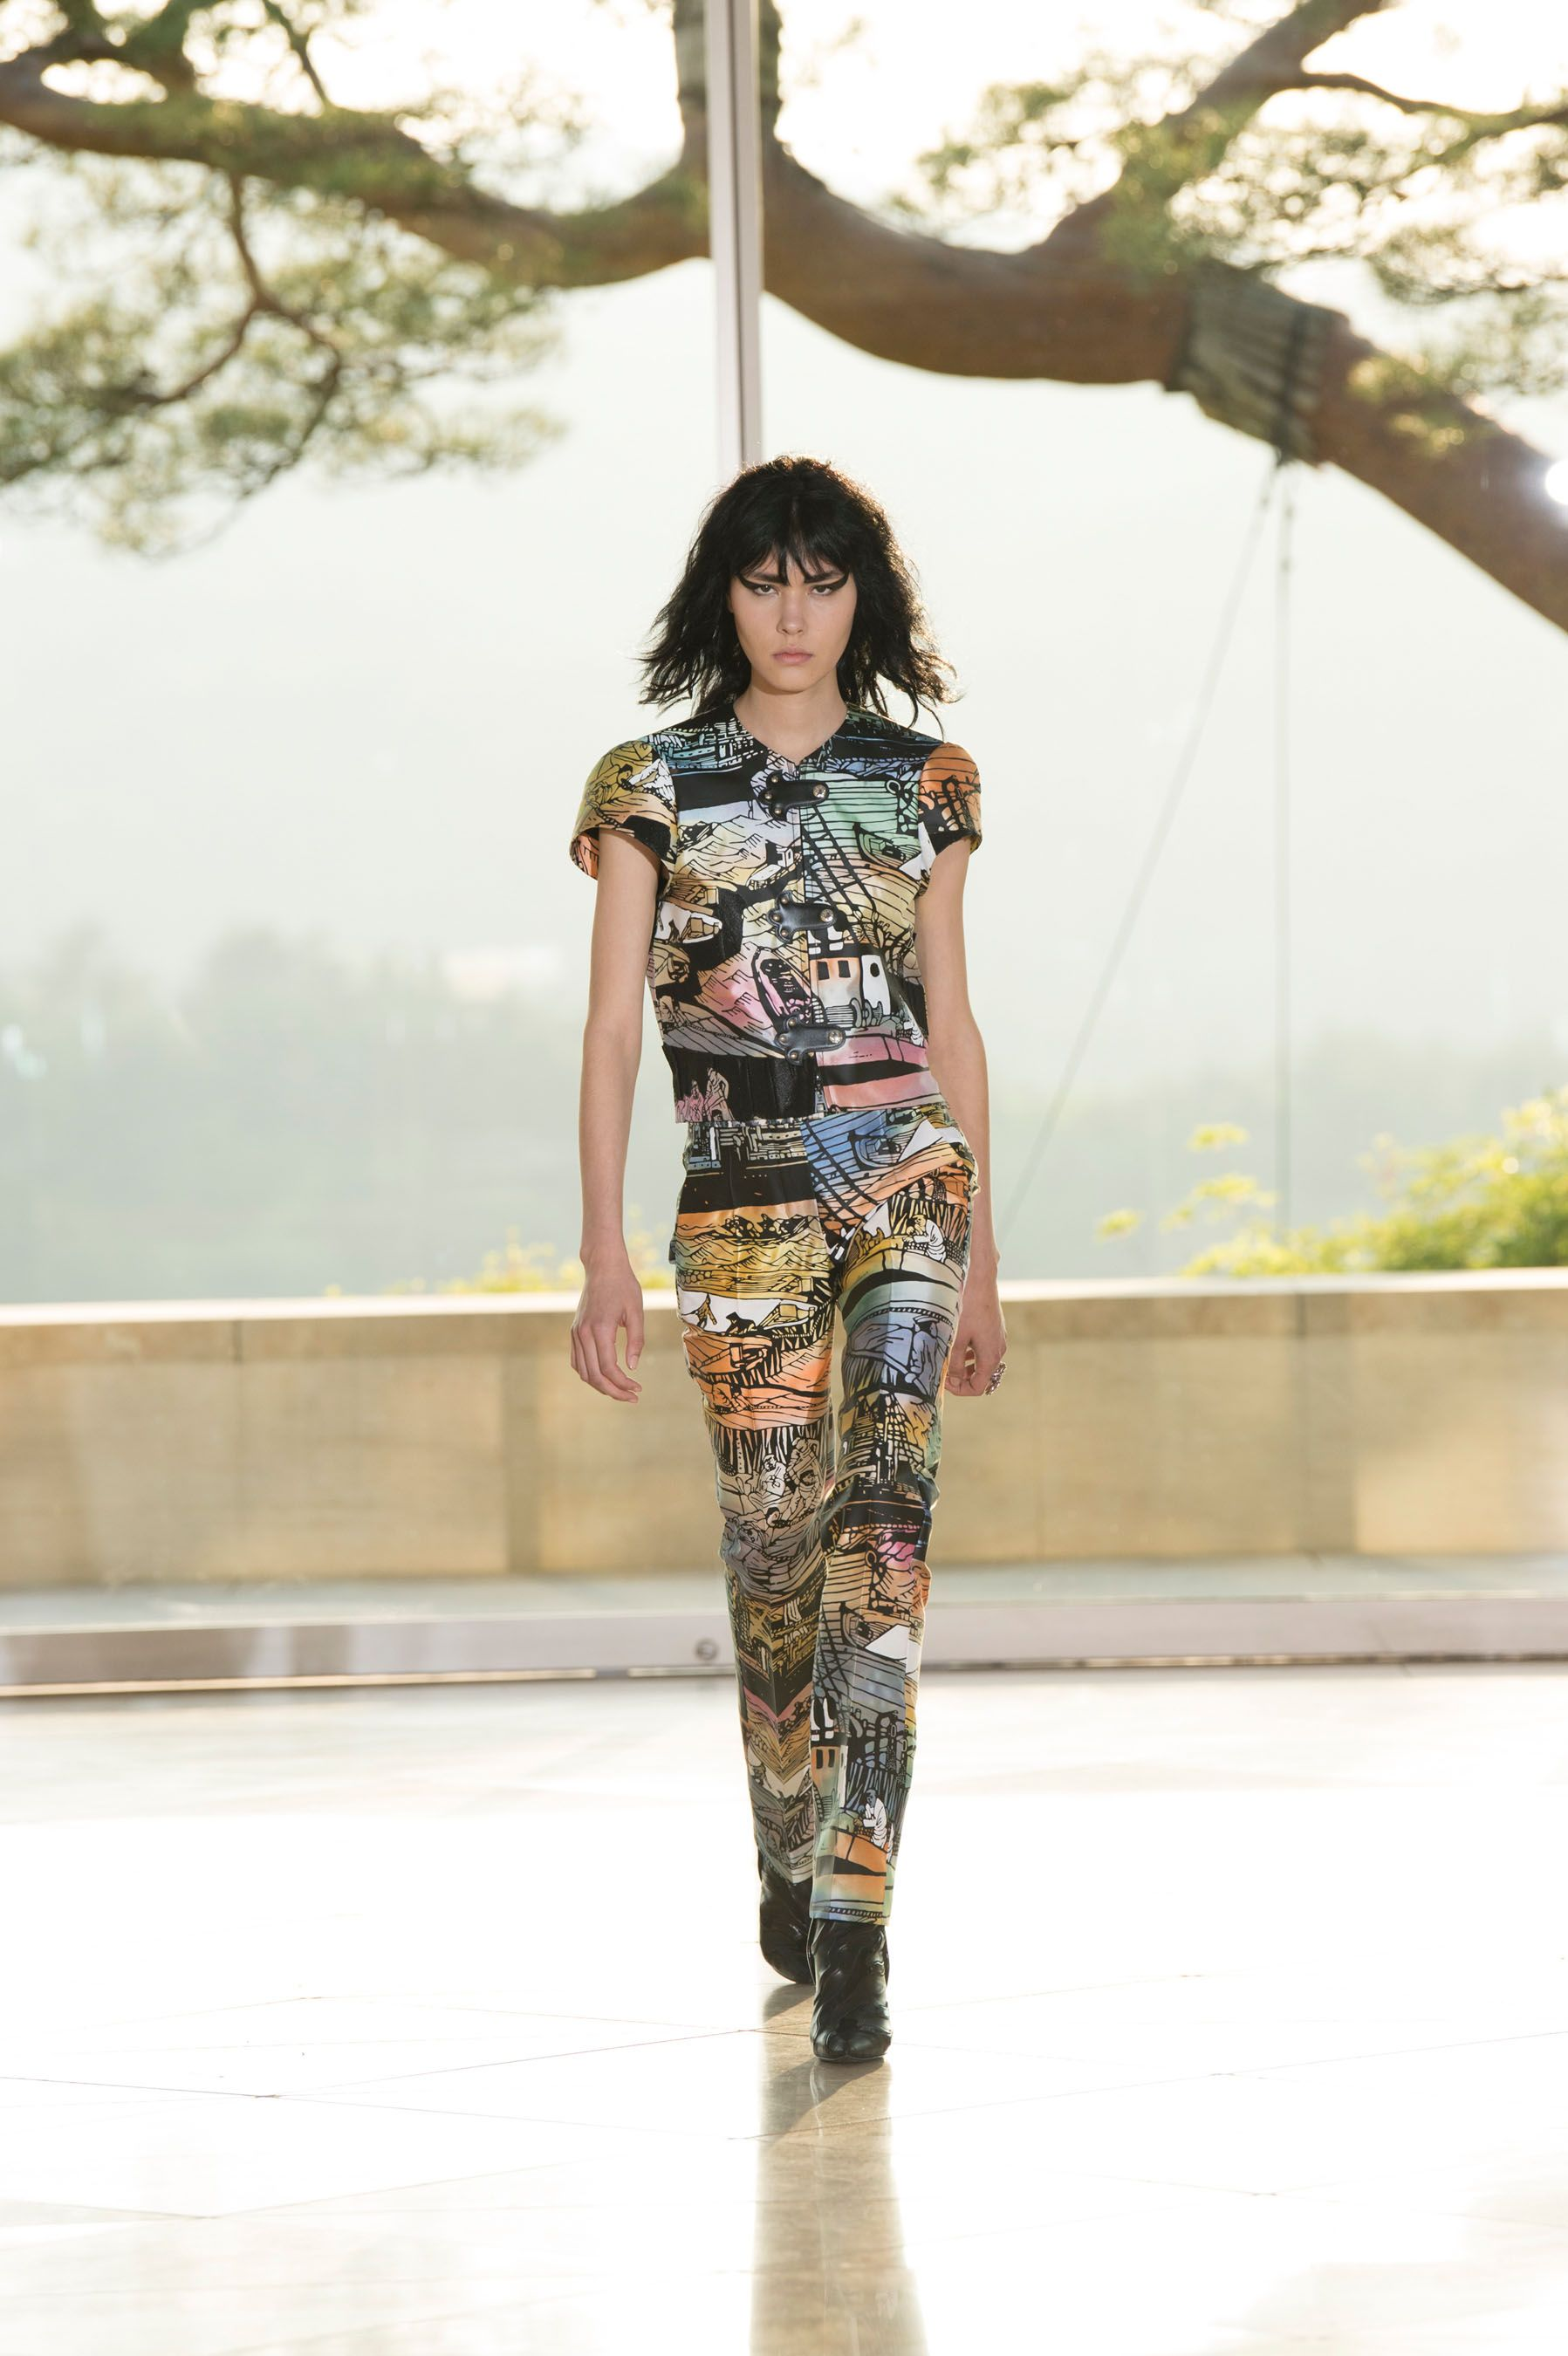 Louis Vuitton Resort 2018 Fashion Show, Cruise, Kyoto, Japan, Runway, TheImpression.com - Fashion news, runway, street style, models, accessories